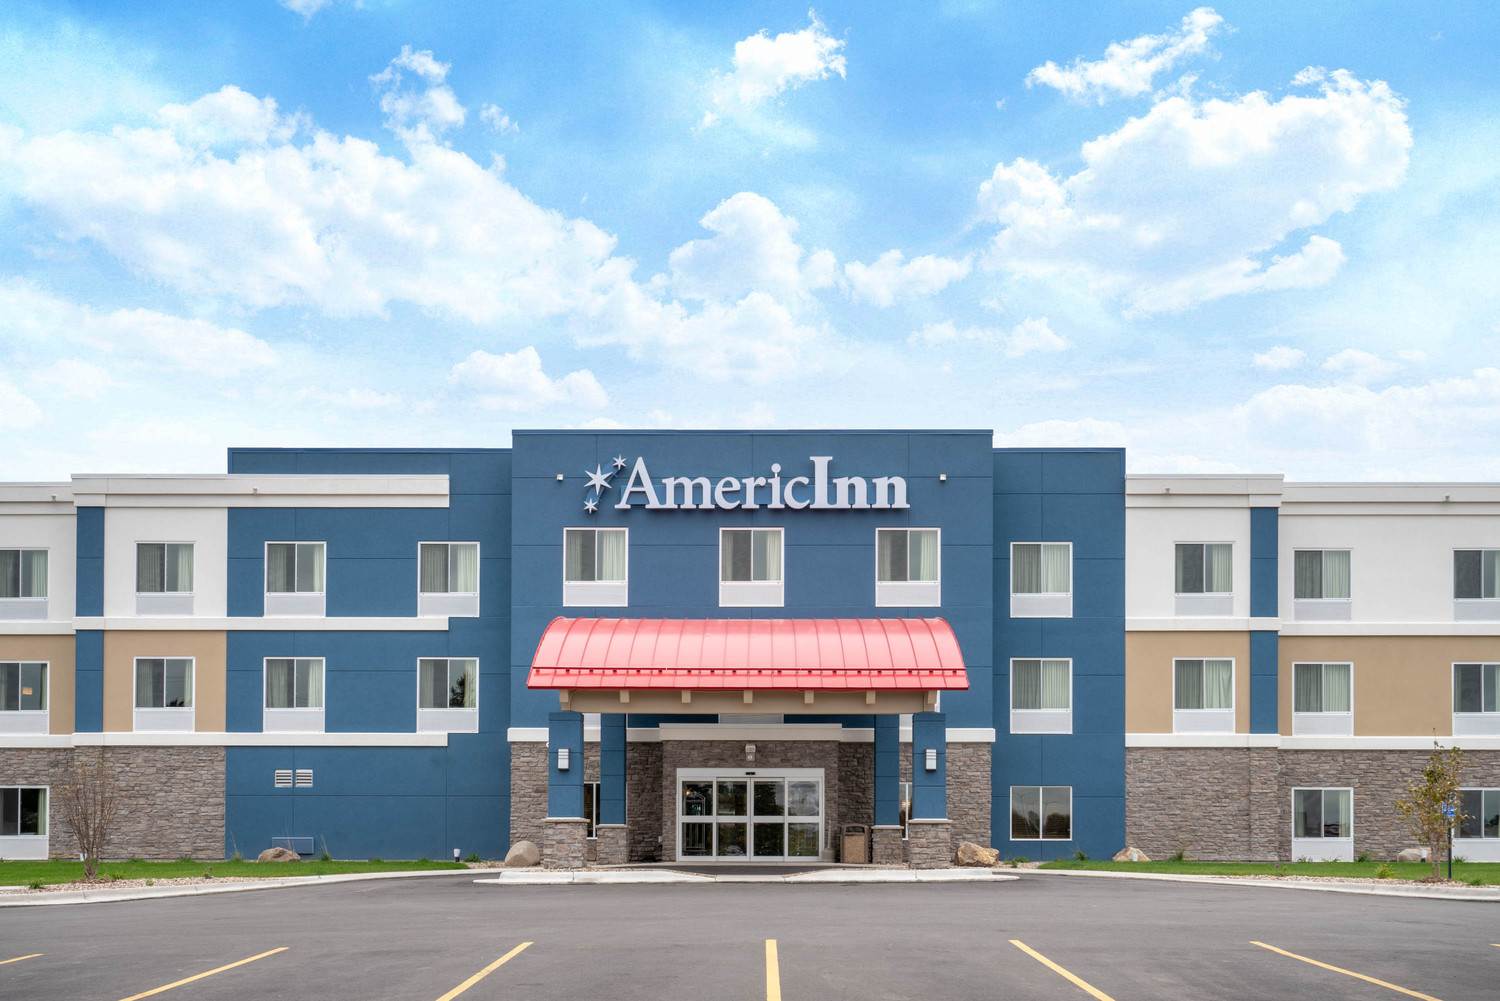 AmericInn by Wyndham, Windom, MN